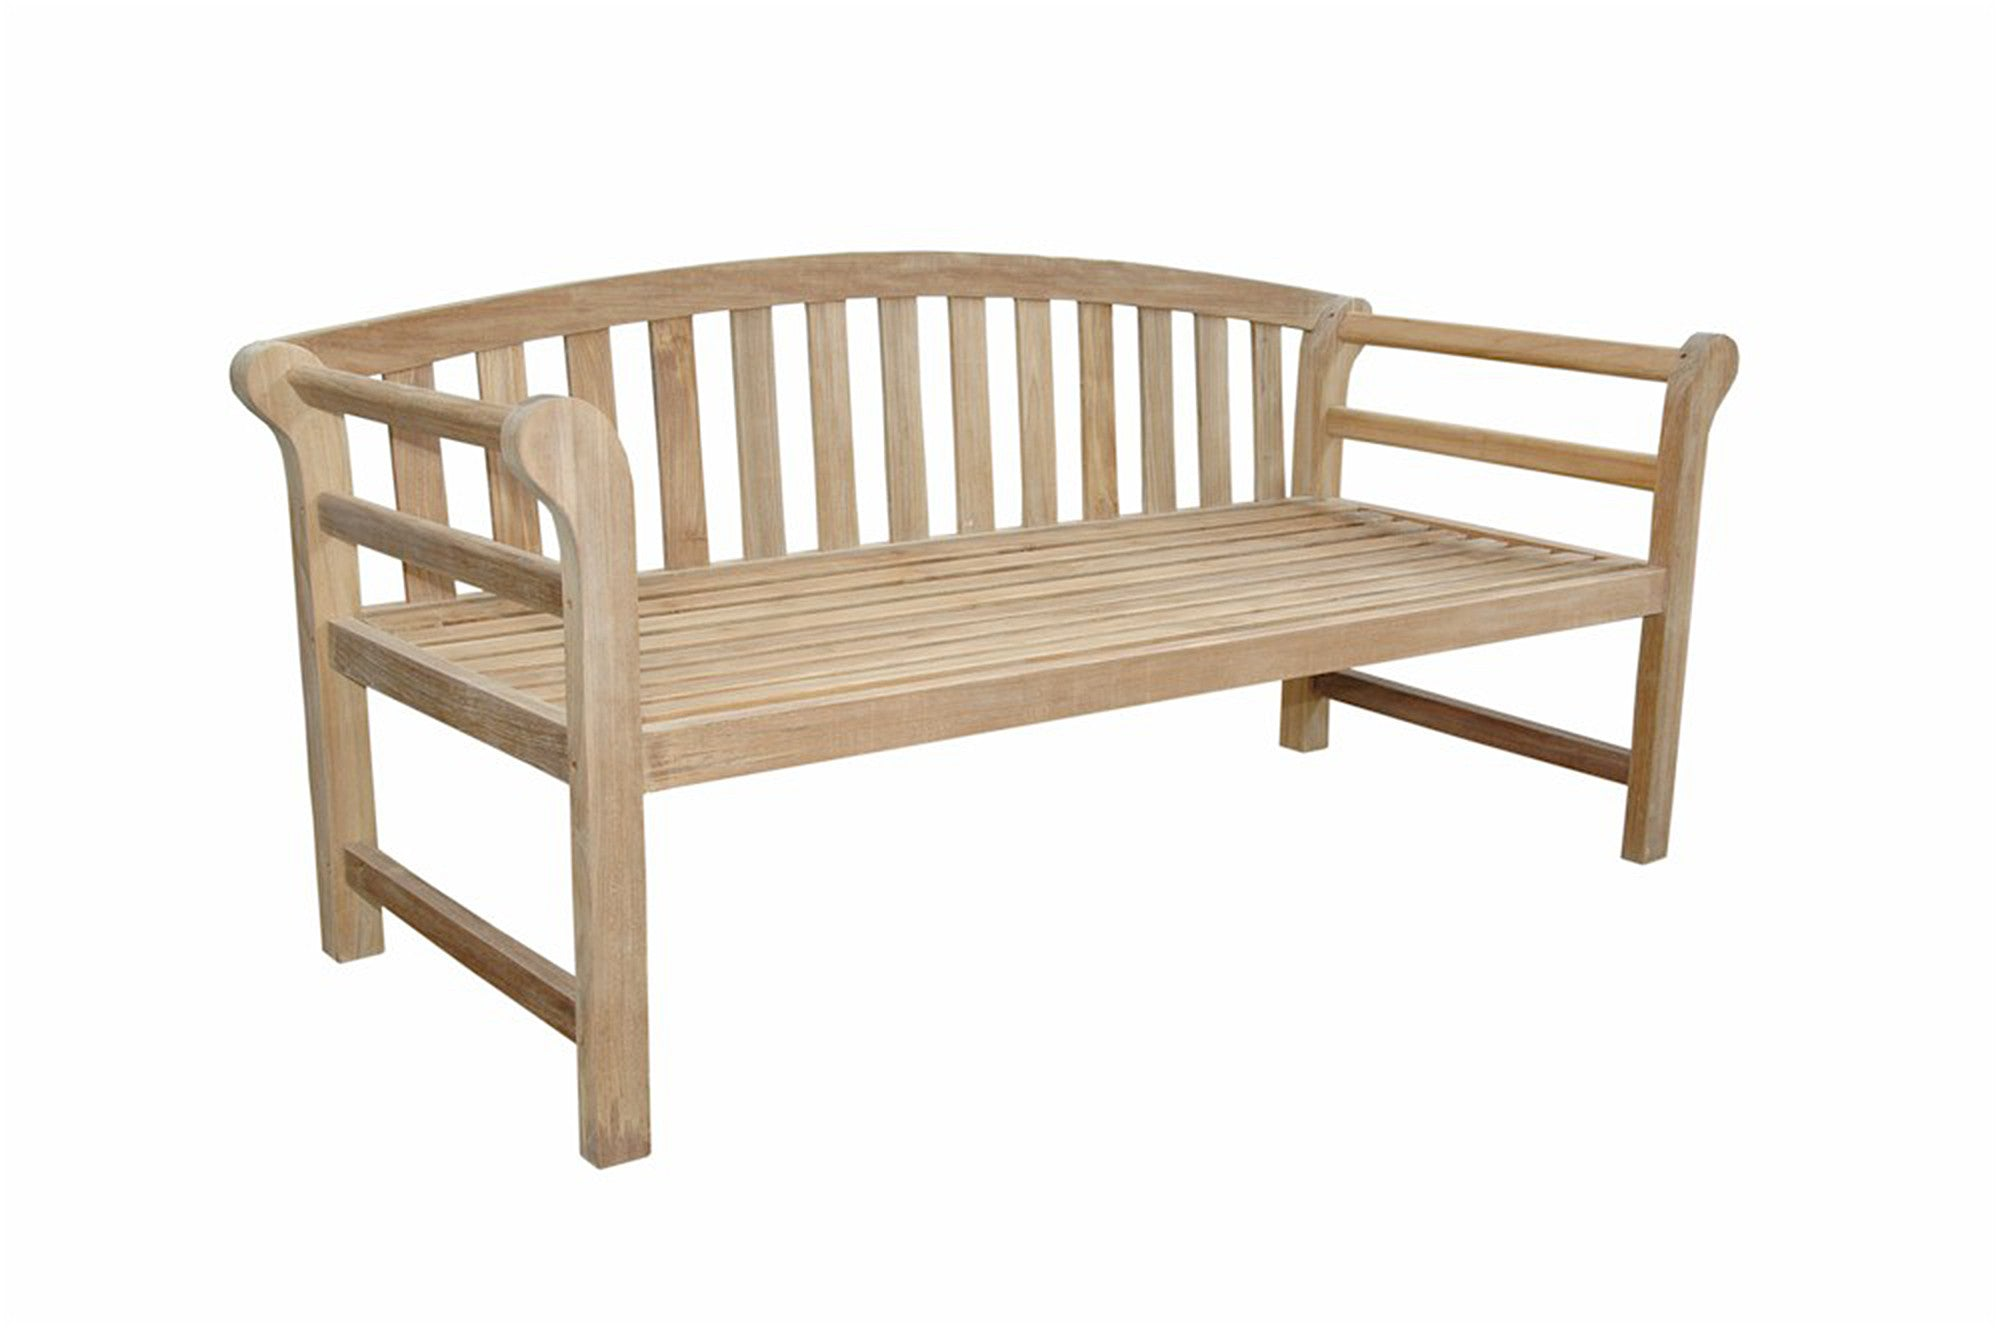 Teak Wood Benches Swings In Beautiful Shapes And In Many Sizes Teakwood Central